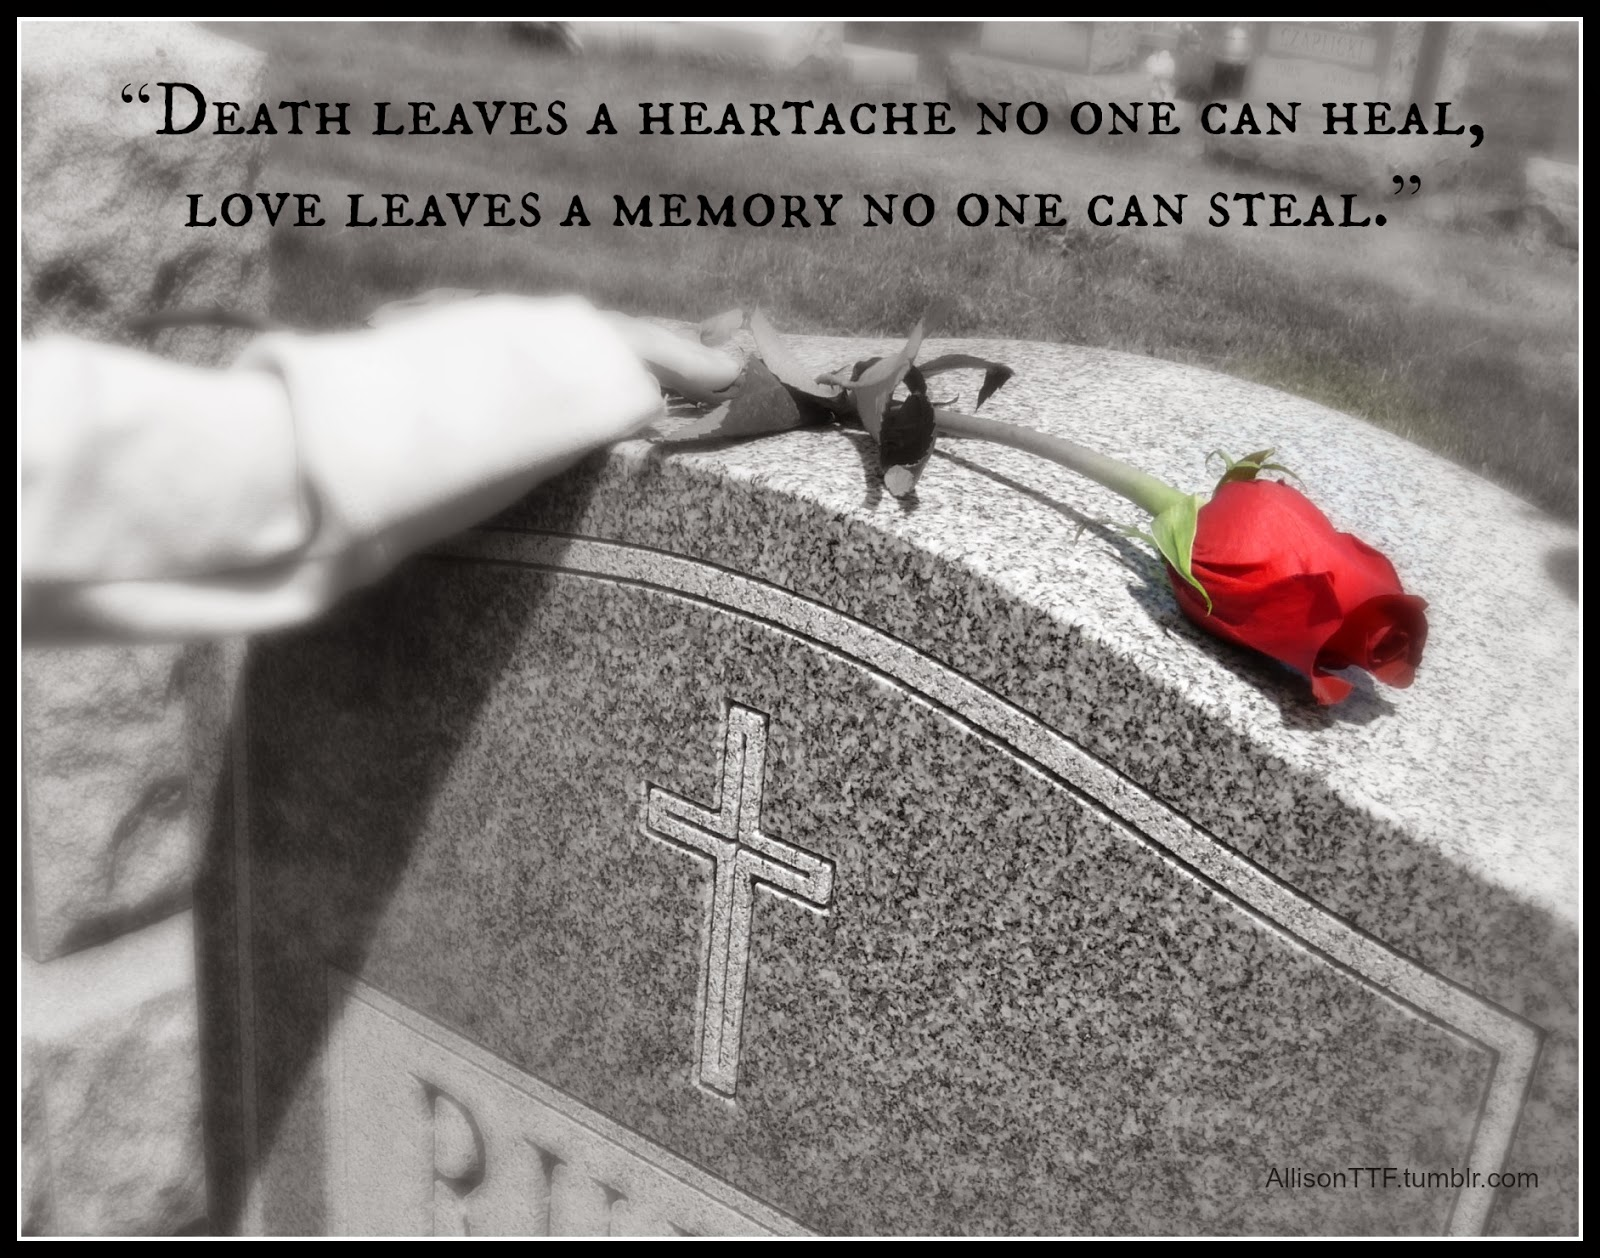 Catholic Quotes On Love Quotes About Loss Of A Father  Saypics